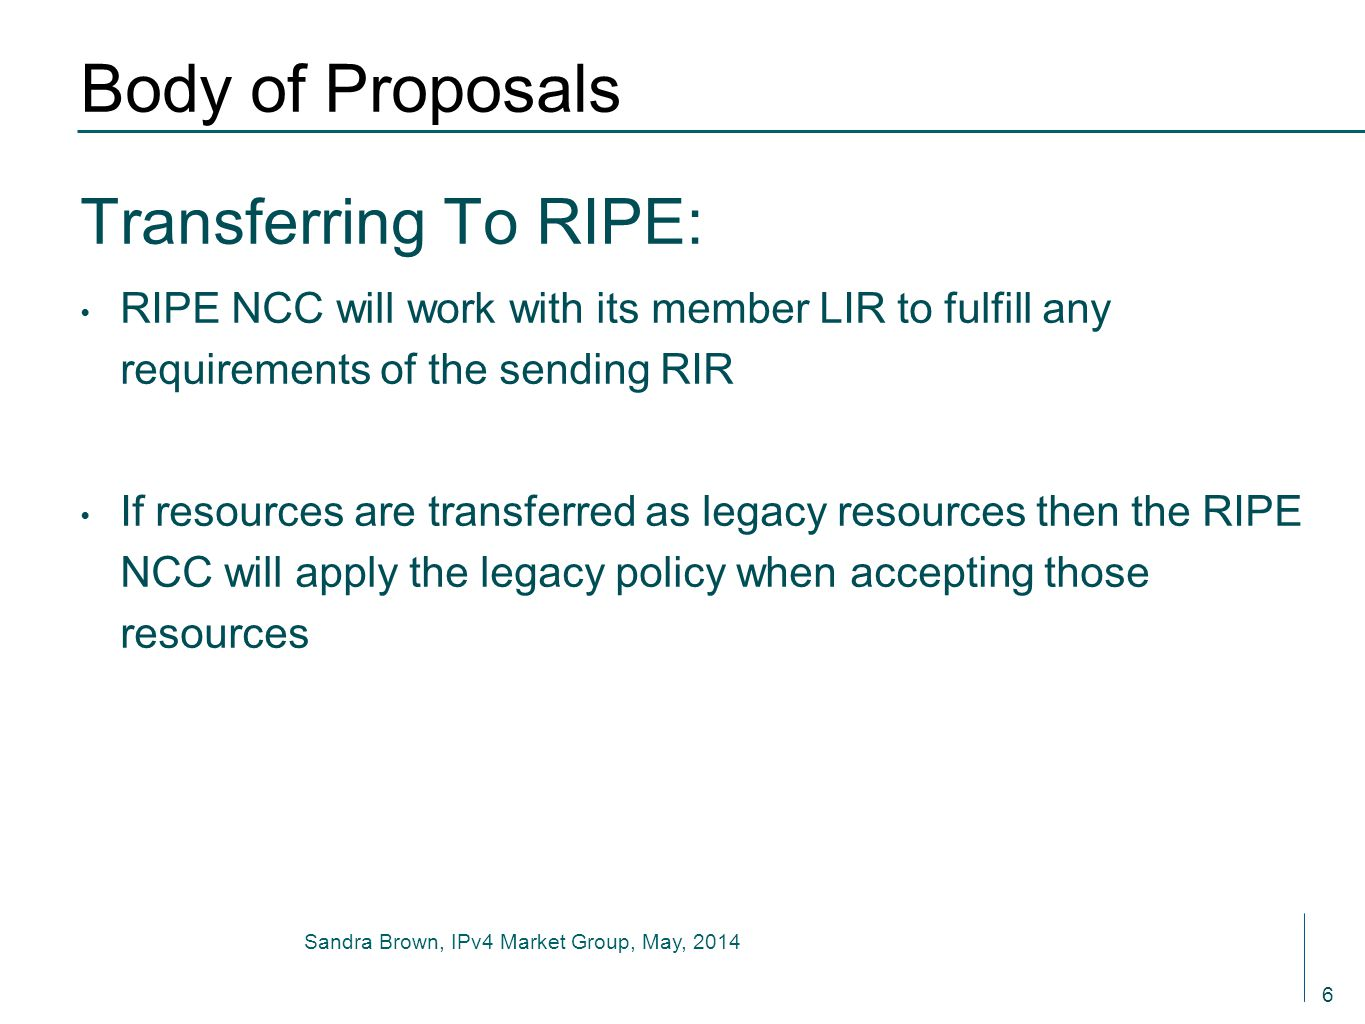 Sandra Brown, IPv4 Market Group, May, 2014 Body of Proposals Transferring To RIPE: RIPE NCC will work with its member LIR to fulfill any requirements of the sending RIR If resources are transferred as legacy resources then the RIPE NCC will apply the legacy policy when accepting those resources 6